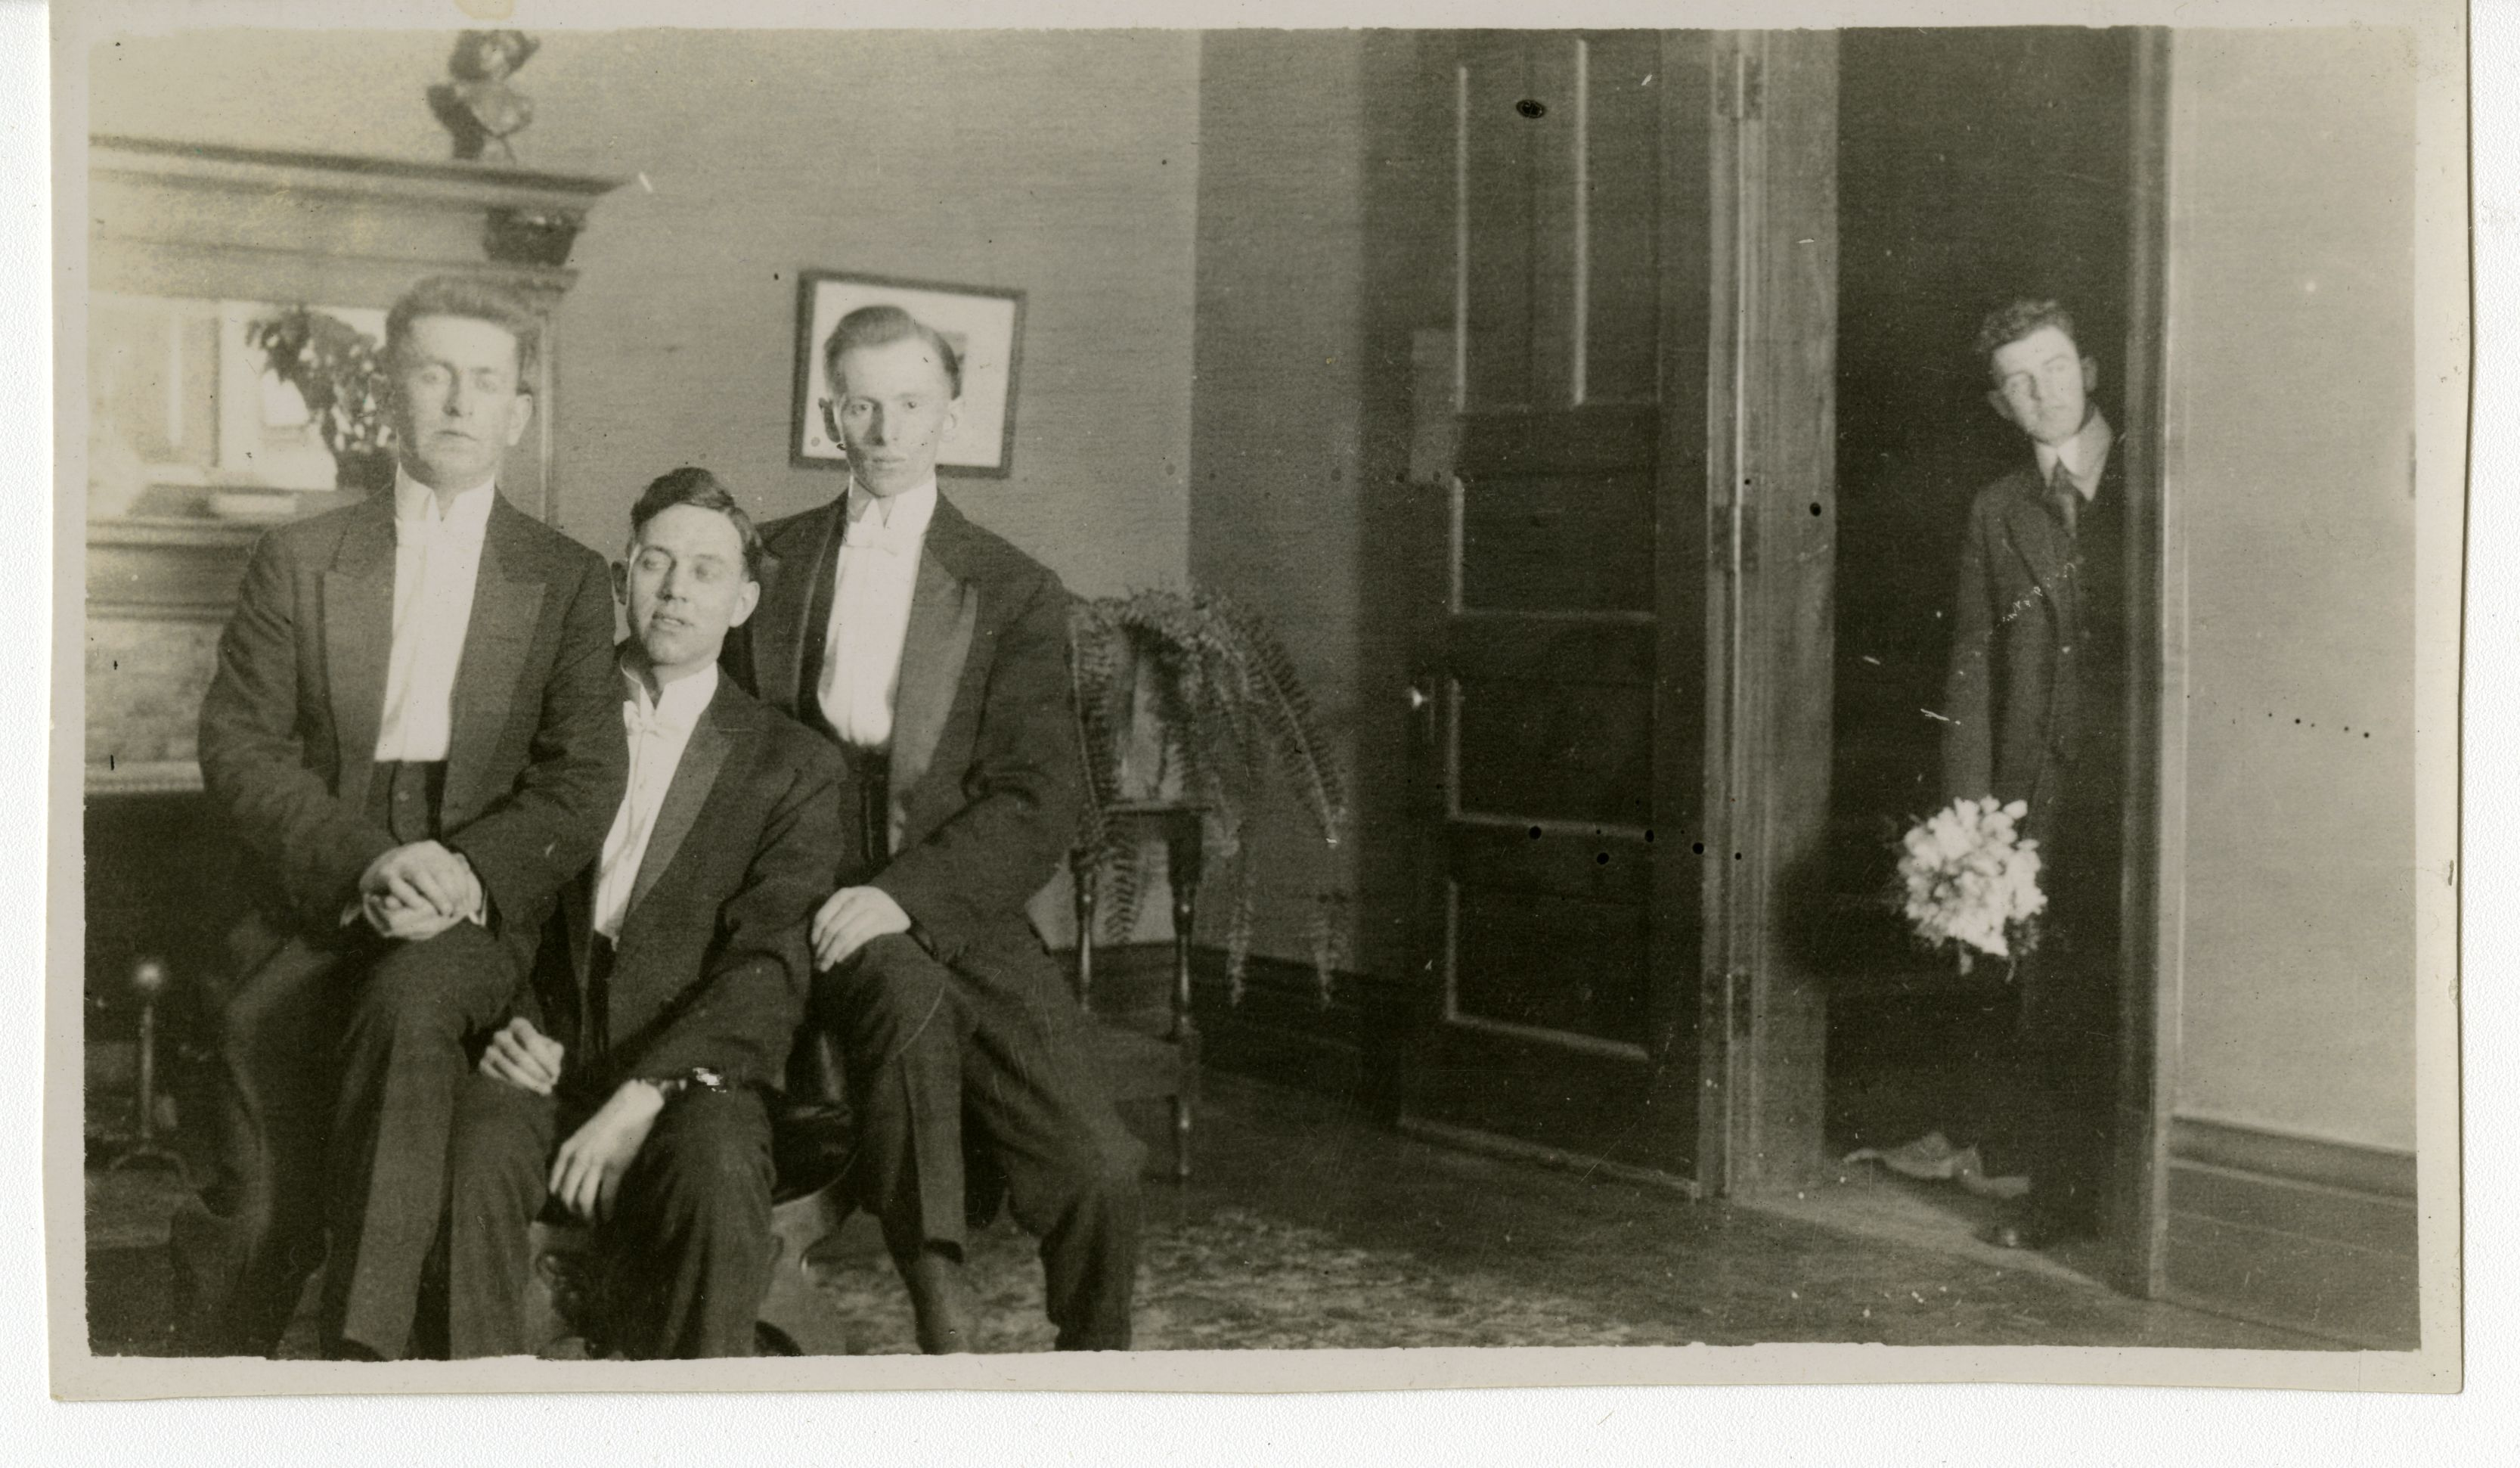 Three men sitting together at the left while another man is at the door holding a bouquet of flowers. All of them are wearing suits. They appear to be in a parlour room rather than on a stage.